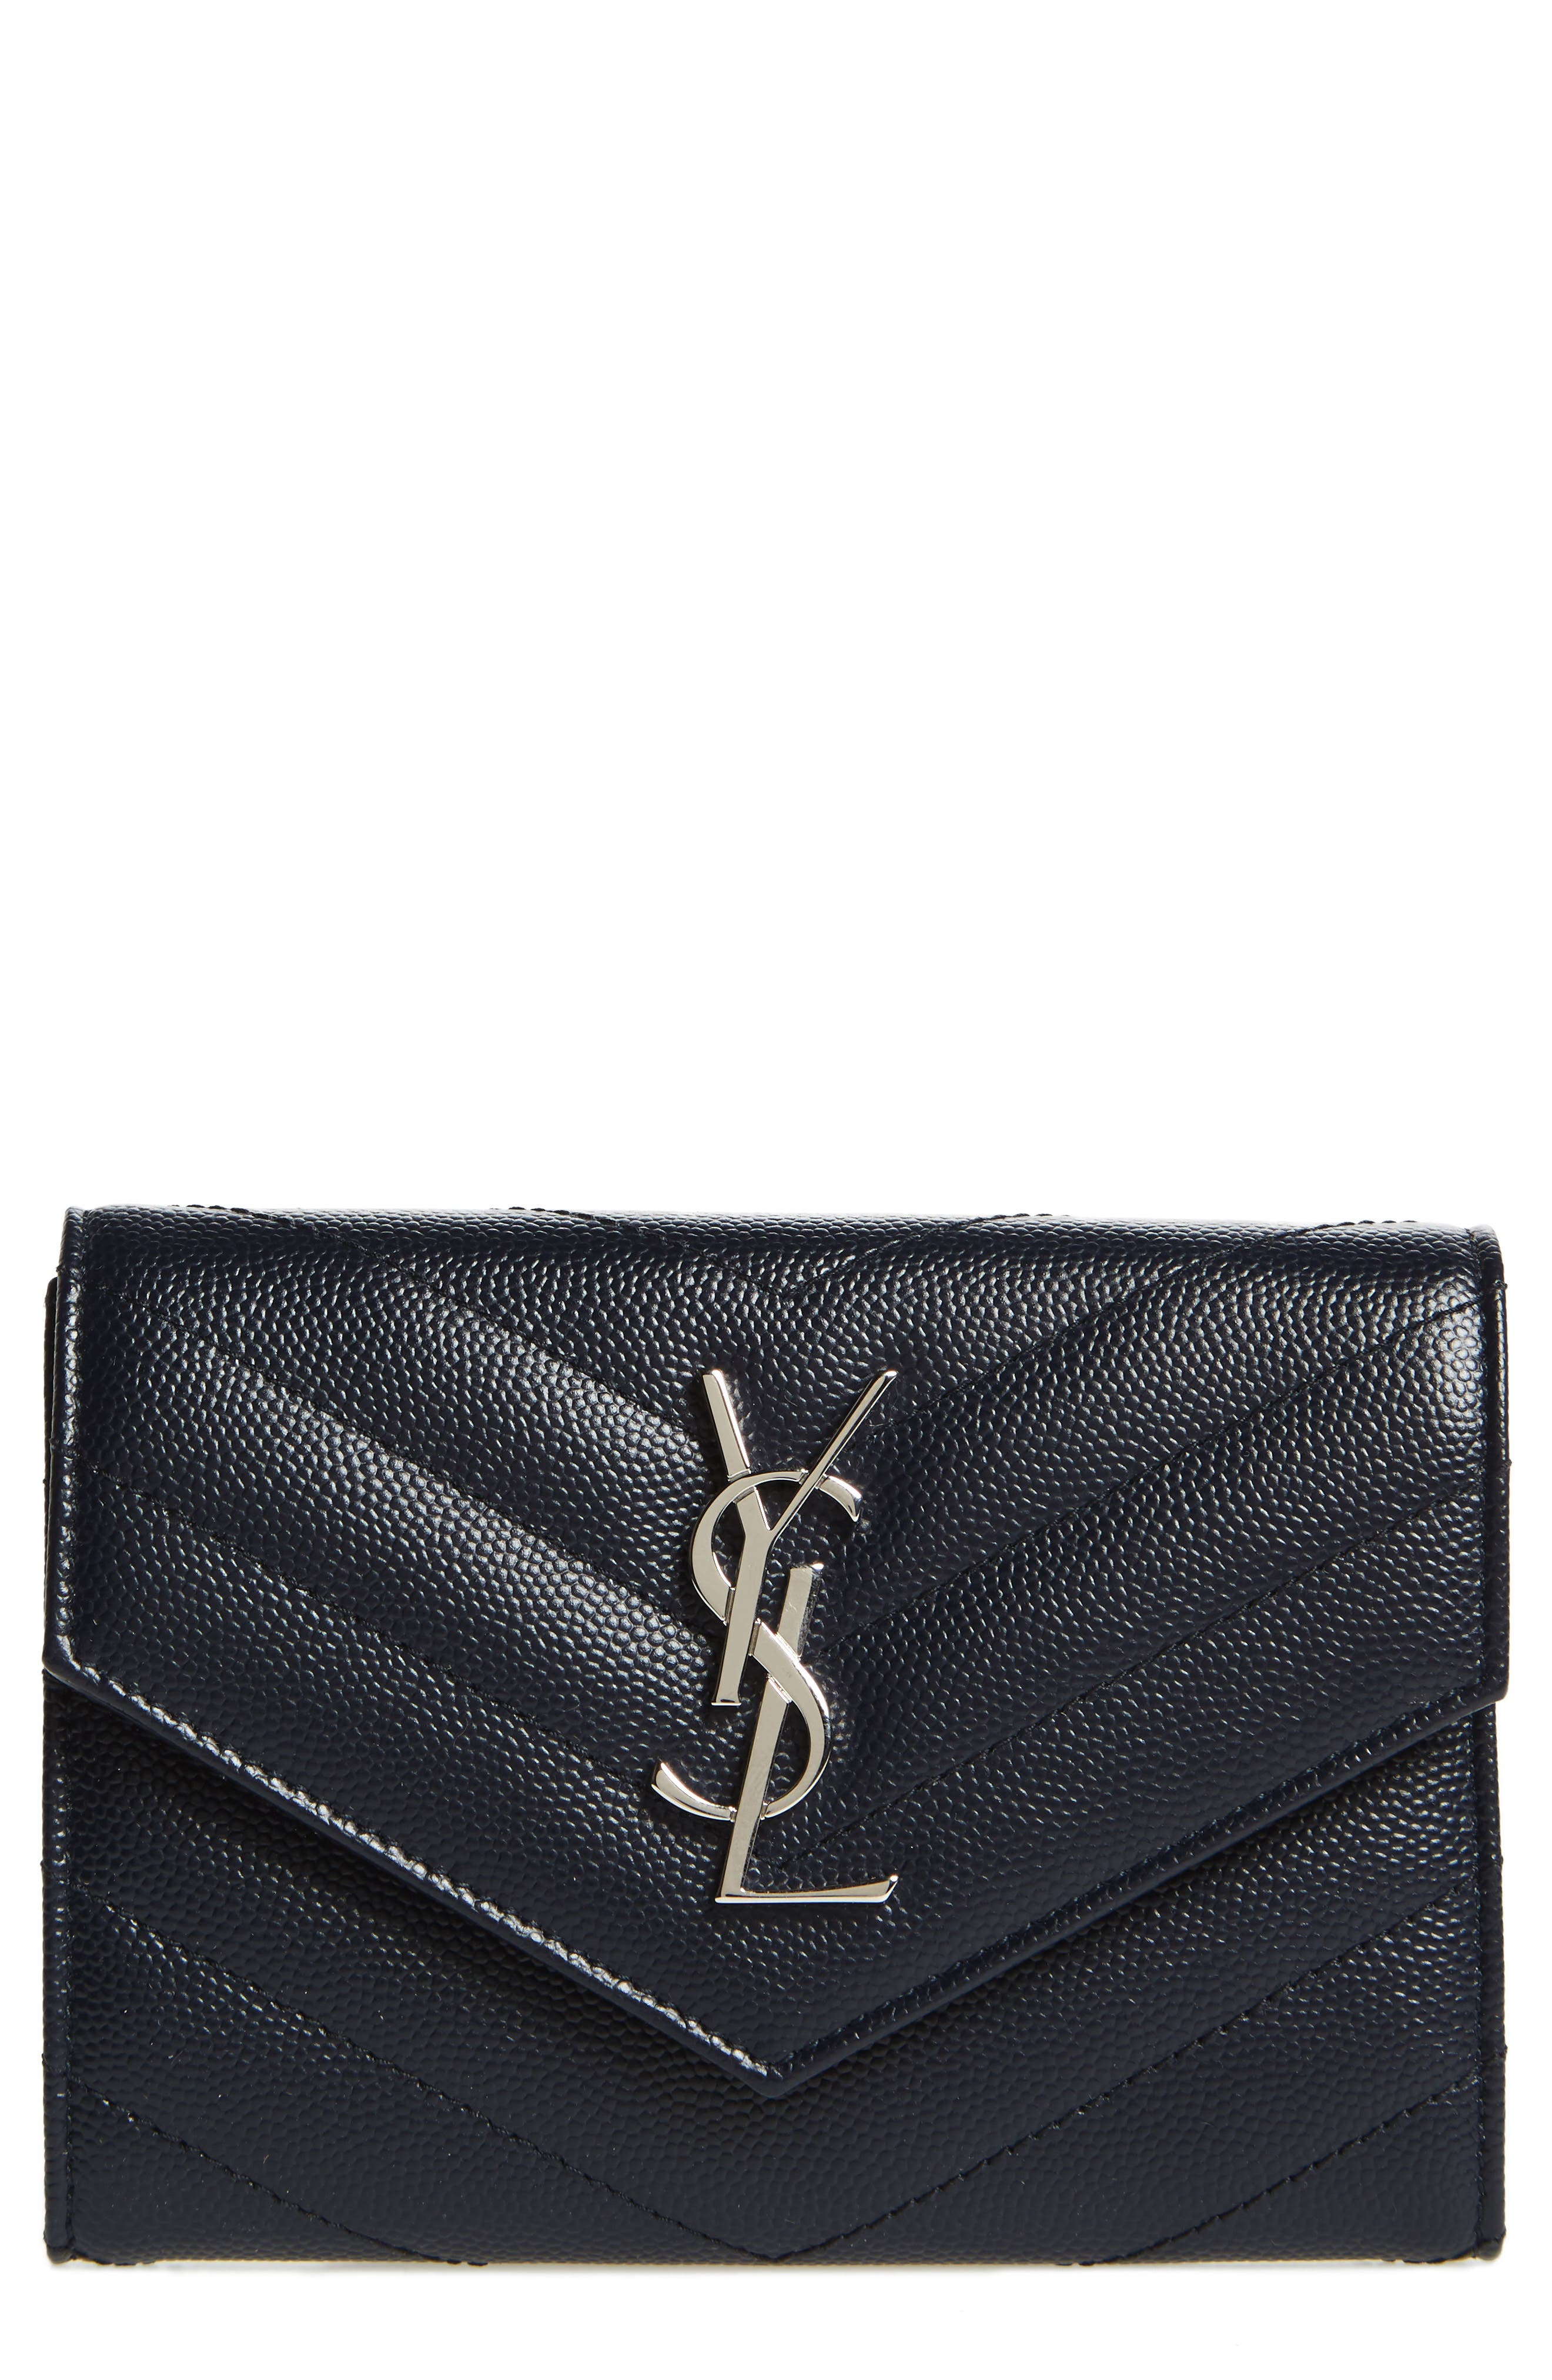 Saint Laurent Monogram Matelassé Leather Passport Case